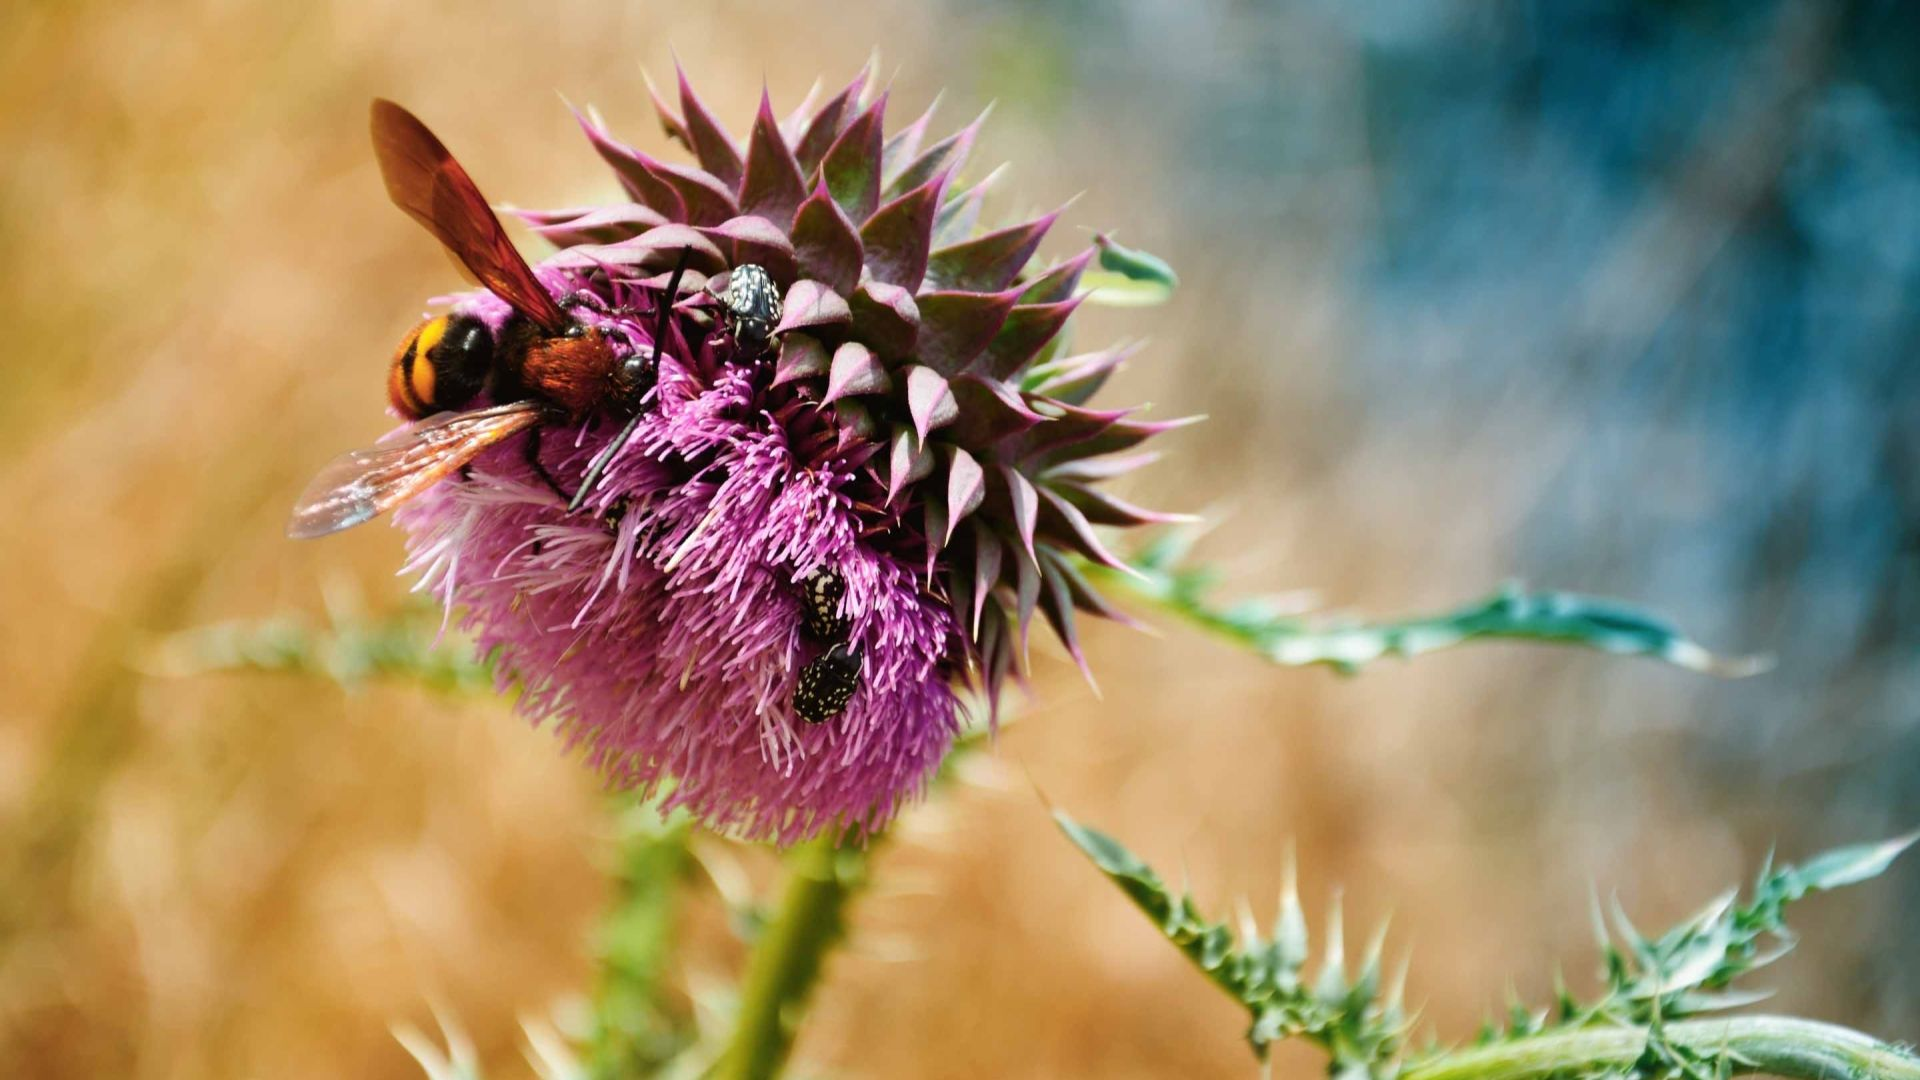 Thistle wallpaper download